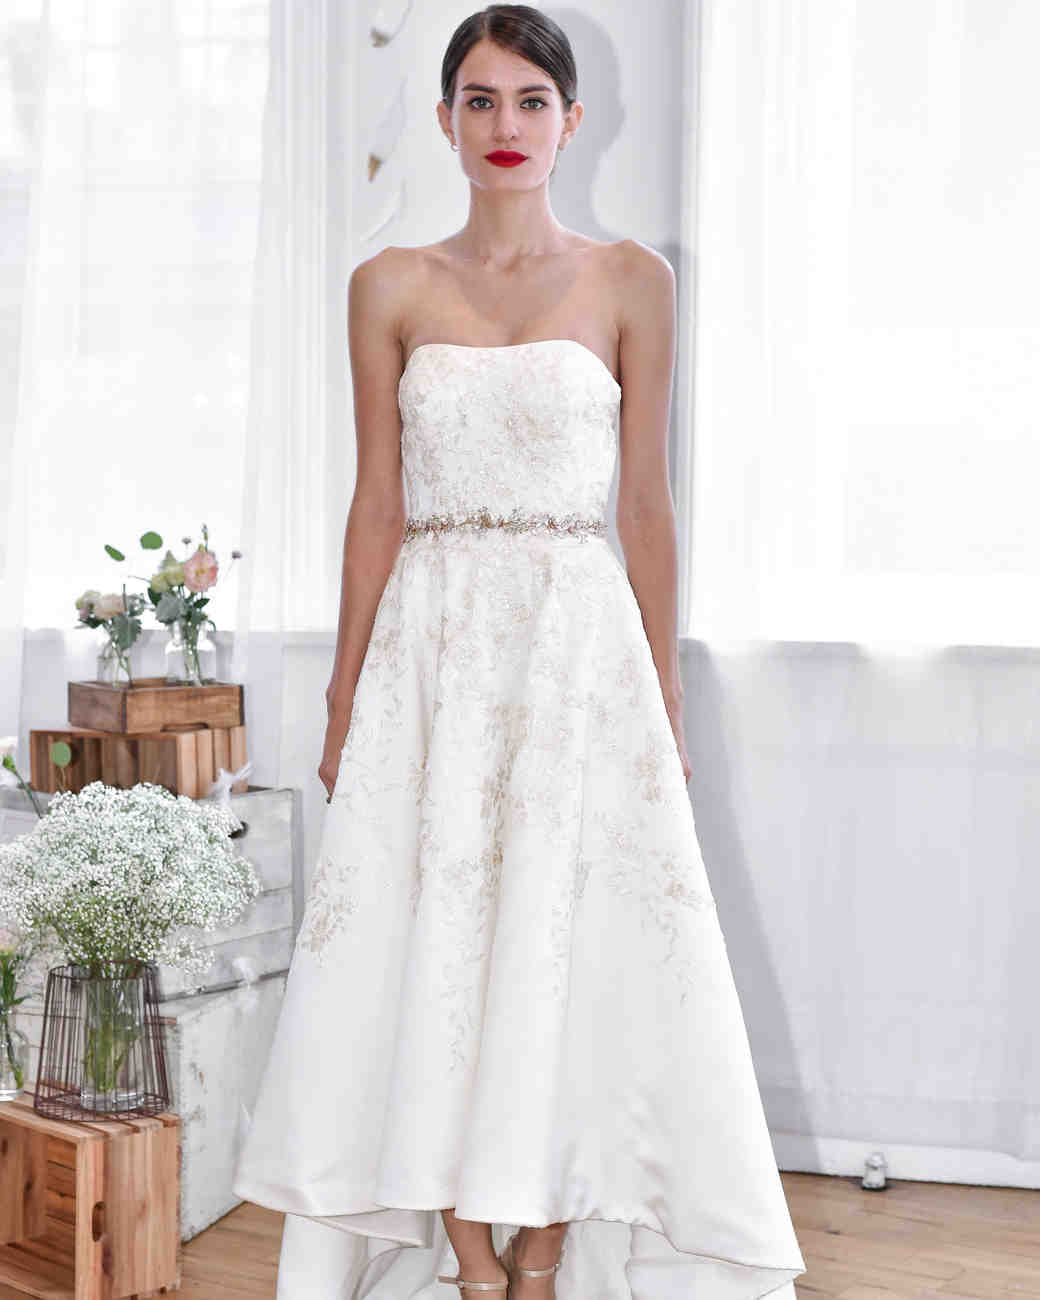 david's bridal fall 2018 strapless a-line wedding dress